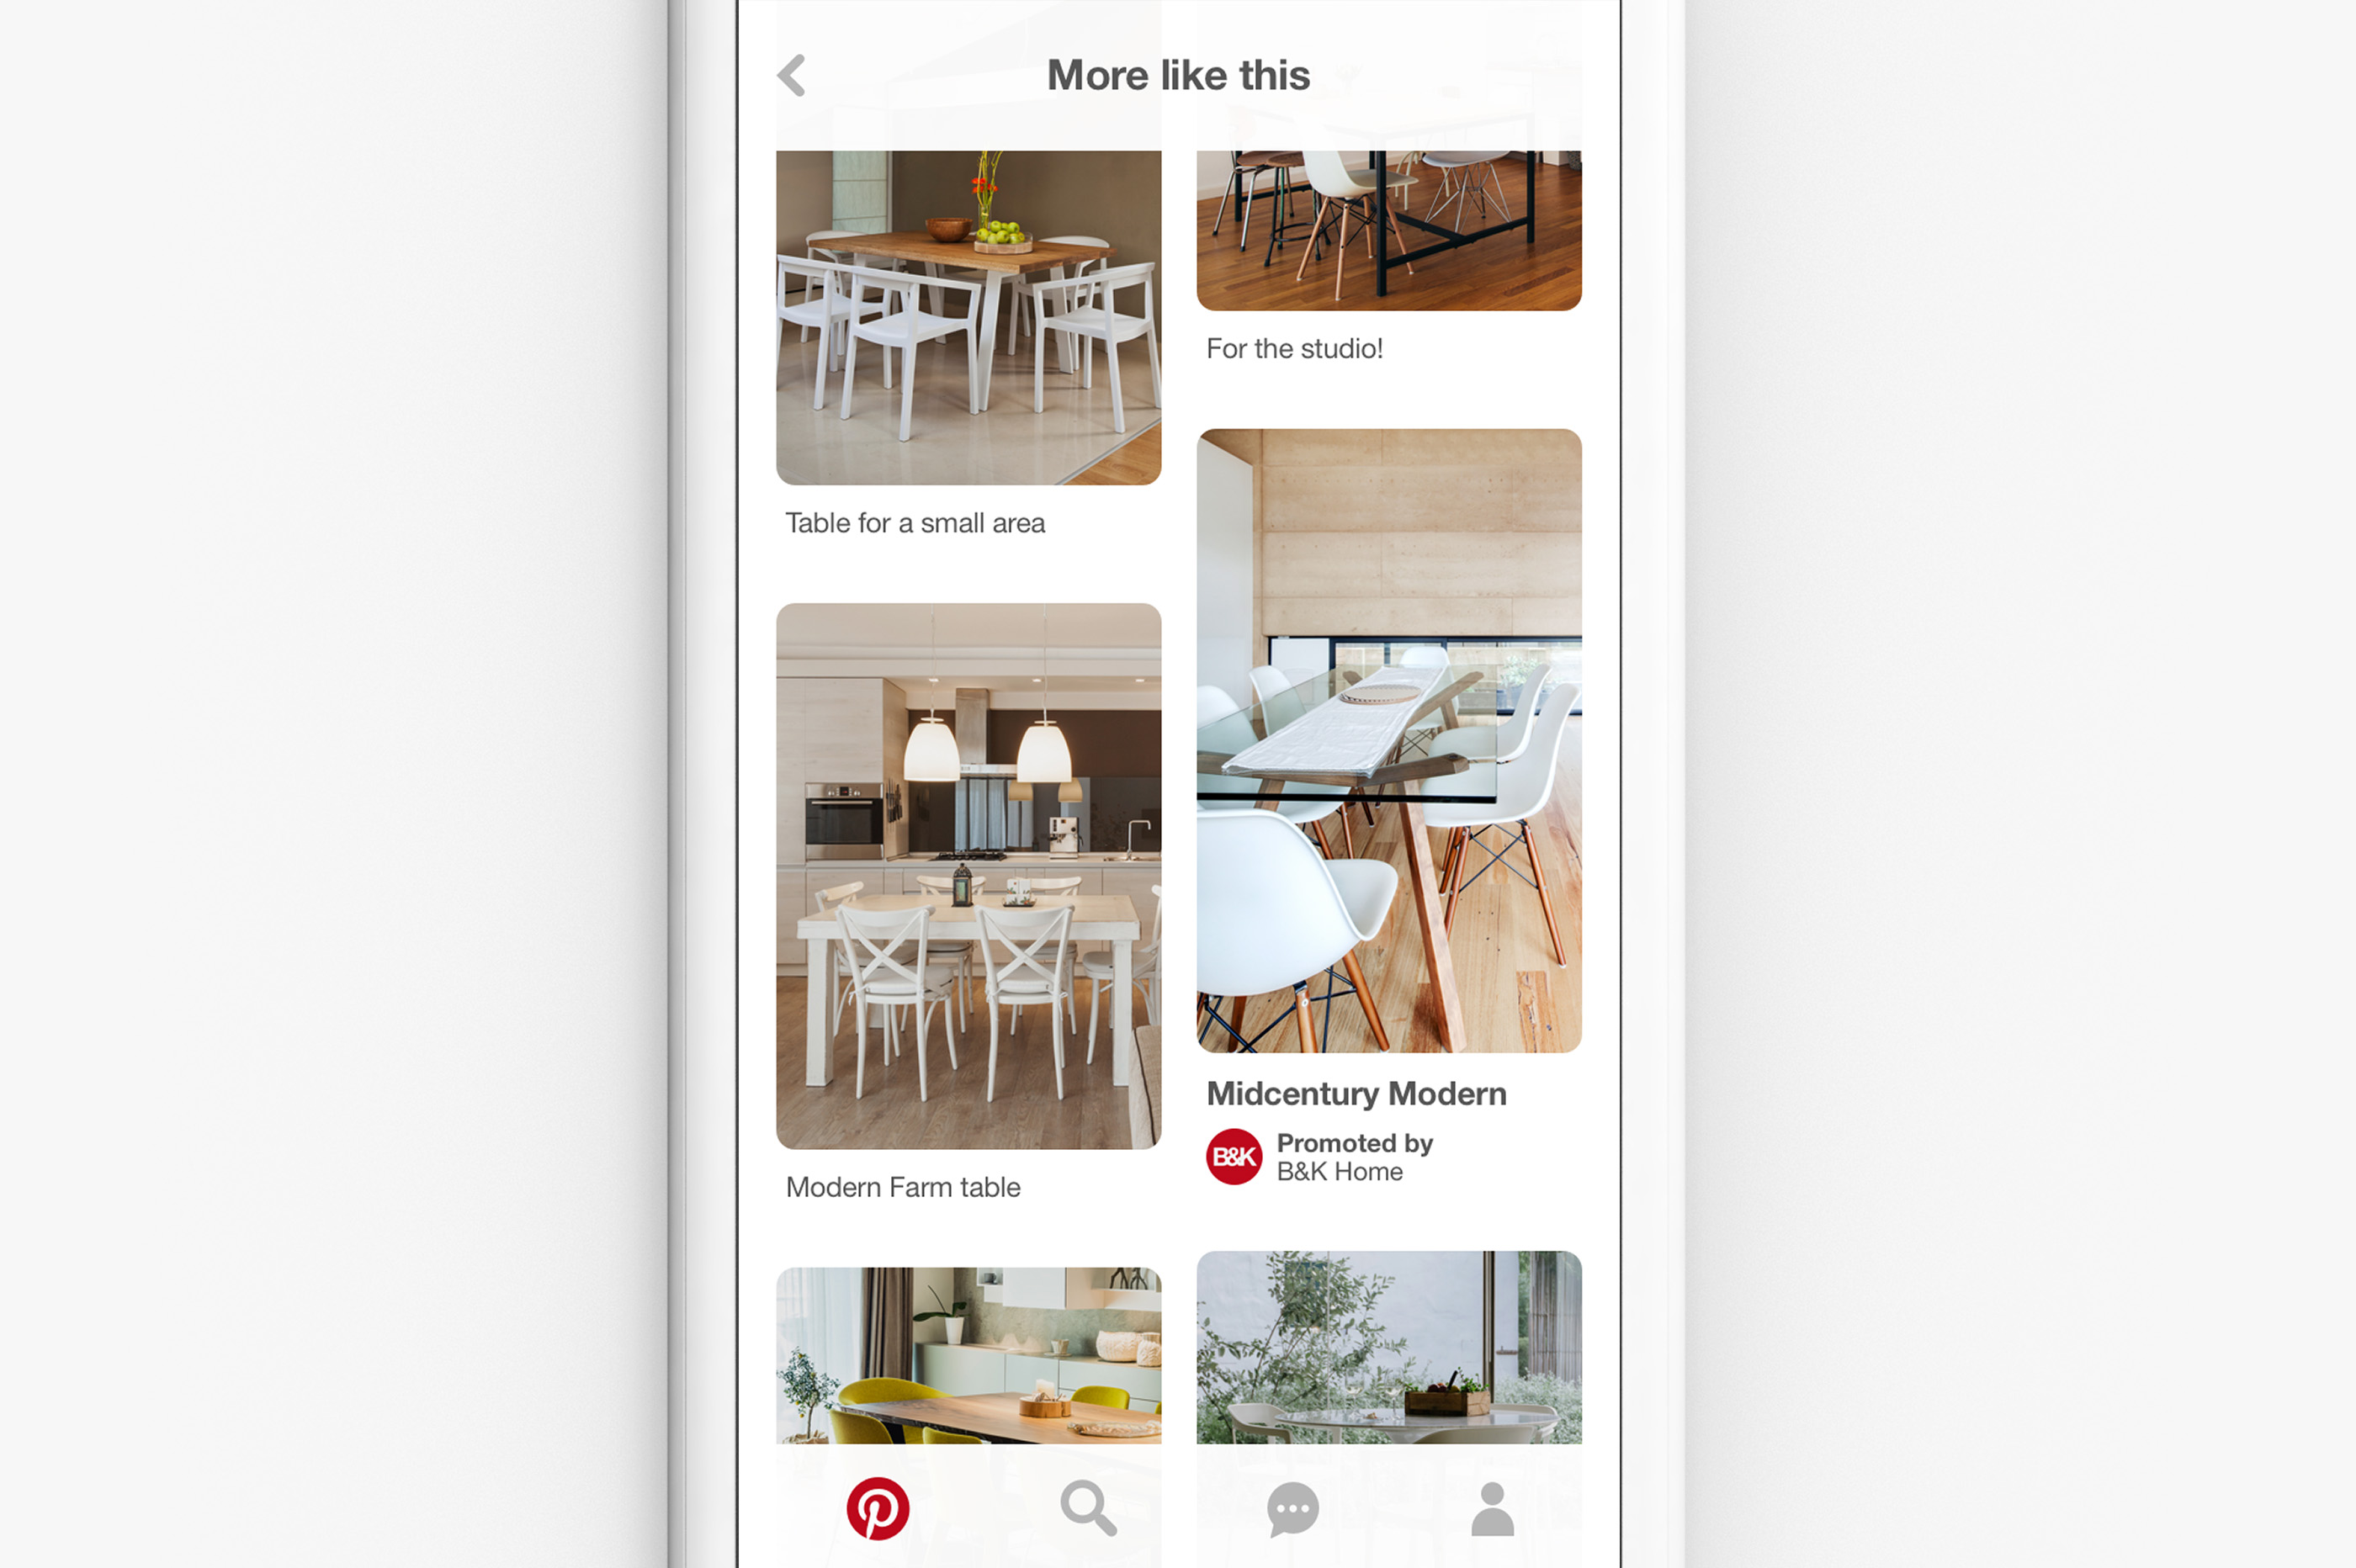 Pinterest Adding Visually-Matched Ad Content to Search Results, Expanding Opportunities | Social Media Today